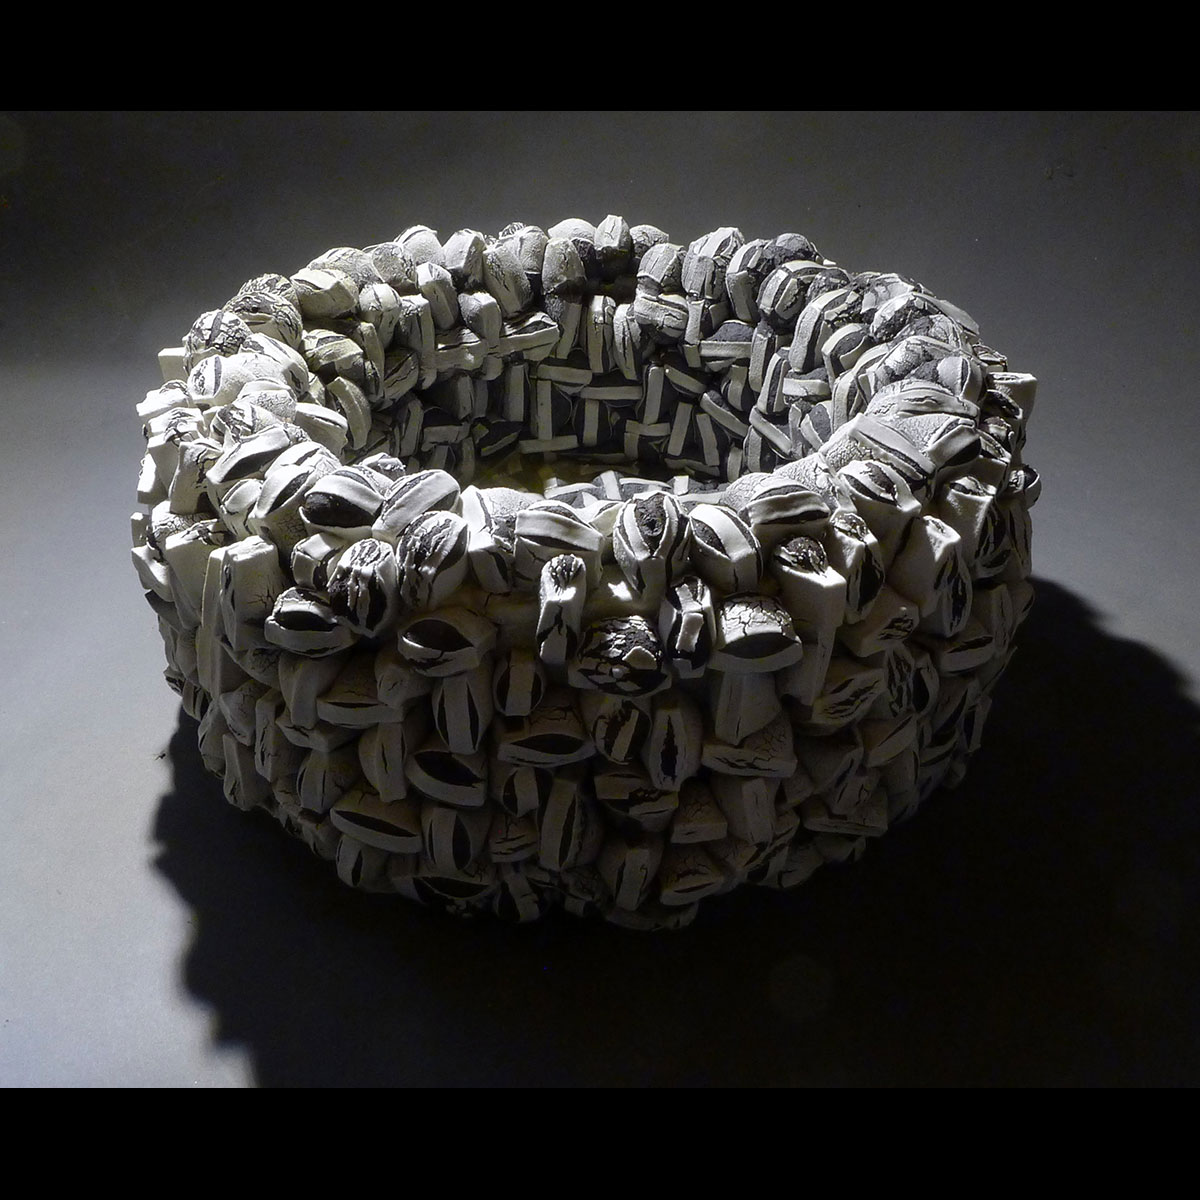 Ceramics Open To Art International Competition For Art